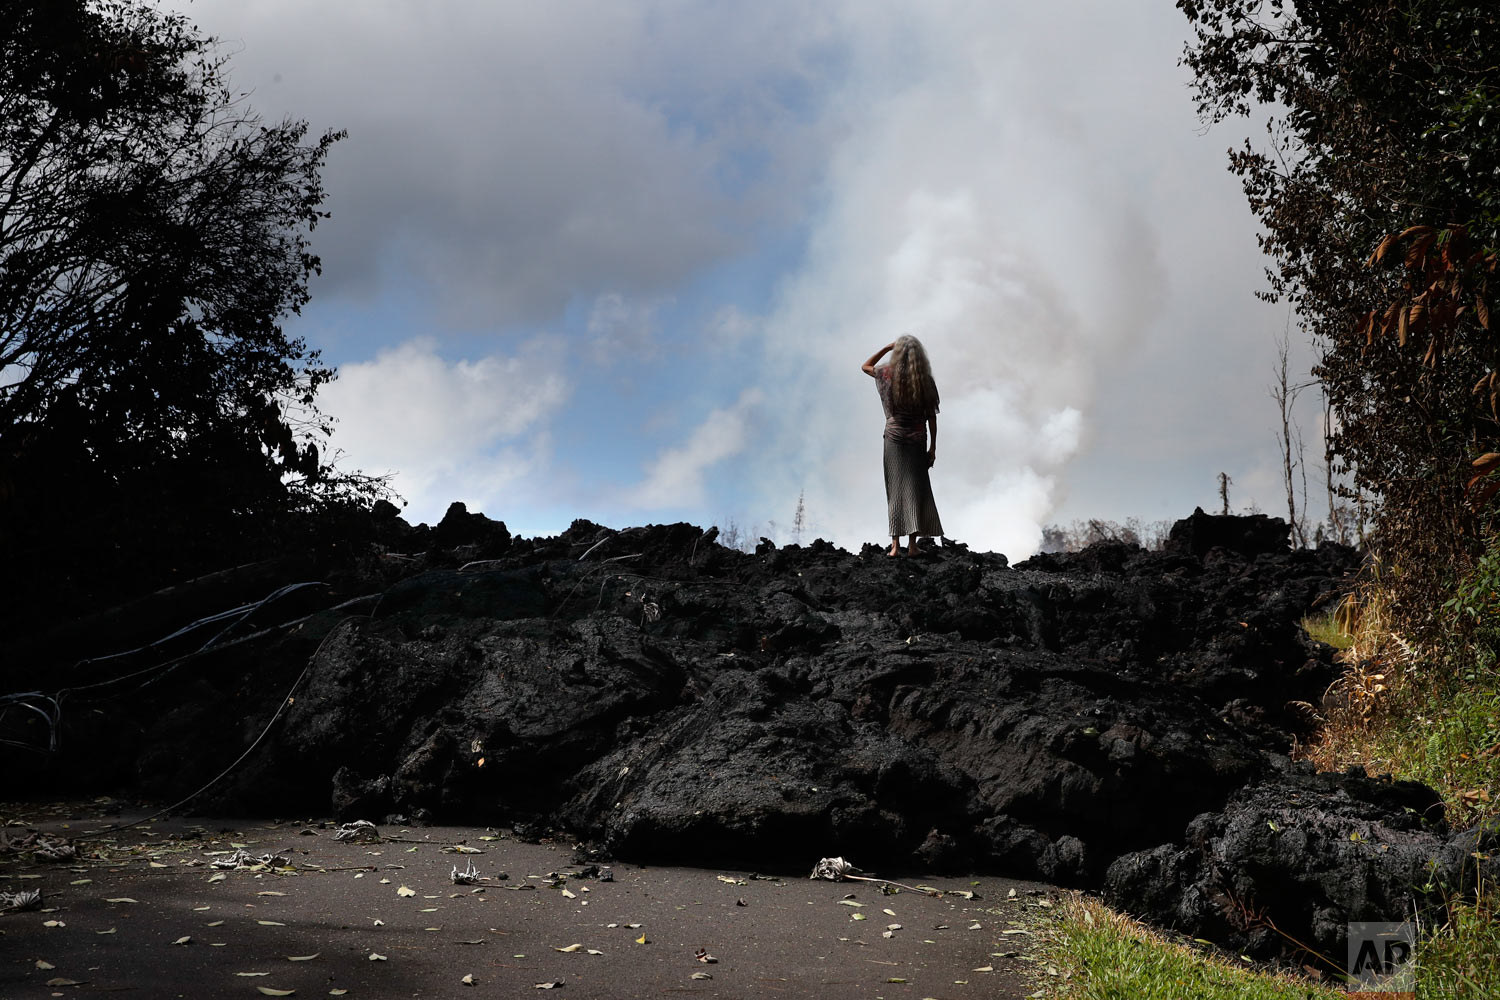 Hannique Ruder, a 65-year-old resident living in the Leilani Estates subdivision, stands on a mound of hardened lava near Pahoa, Hawaii on Friday, May 11, 2018. The Kilauea volcano has destroyed more than 35 structures since it began releasing lava from vents about 25 miles (40 kilometers) east of the summit crater. (AP Photo/Jae C. Hong)